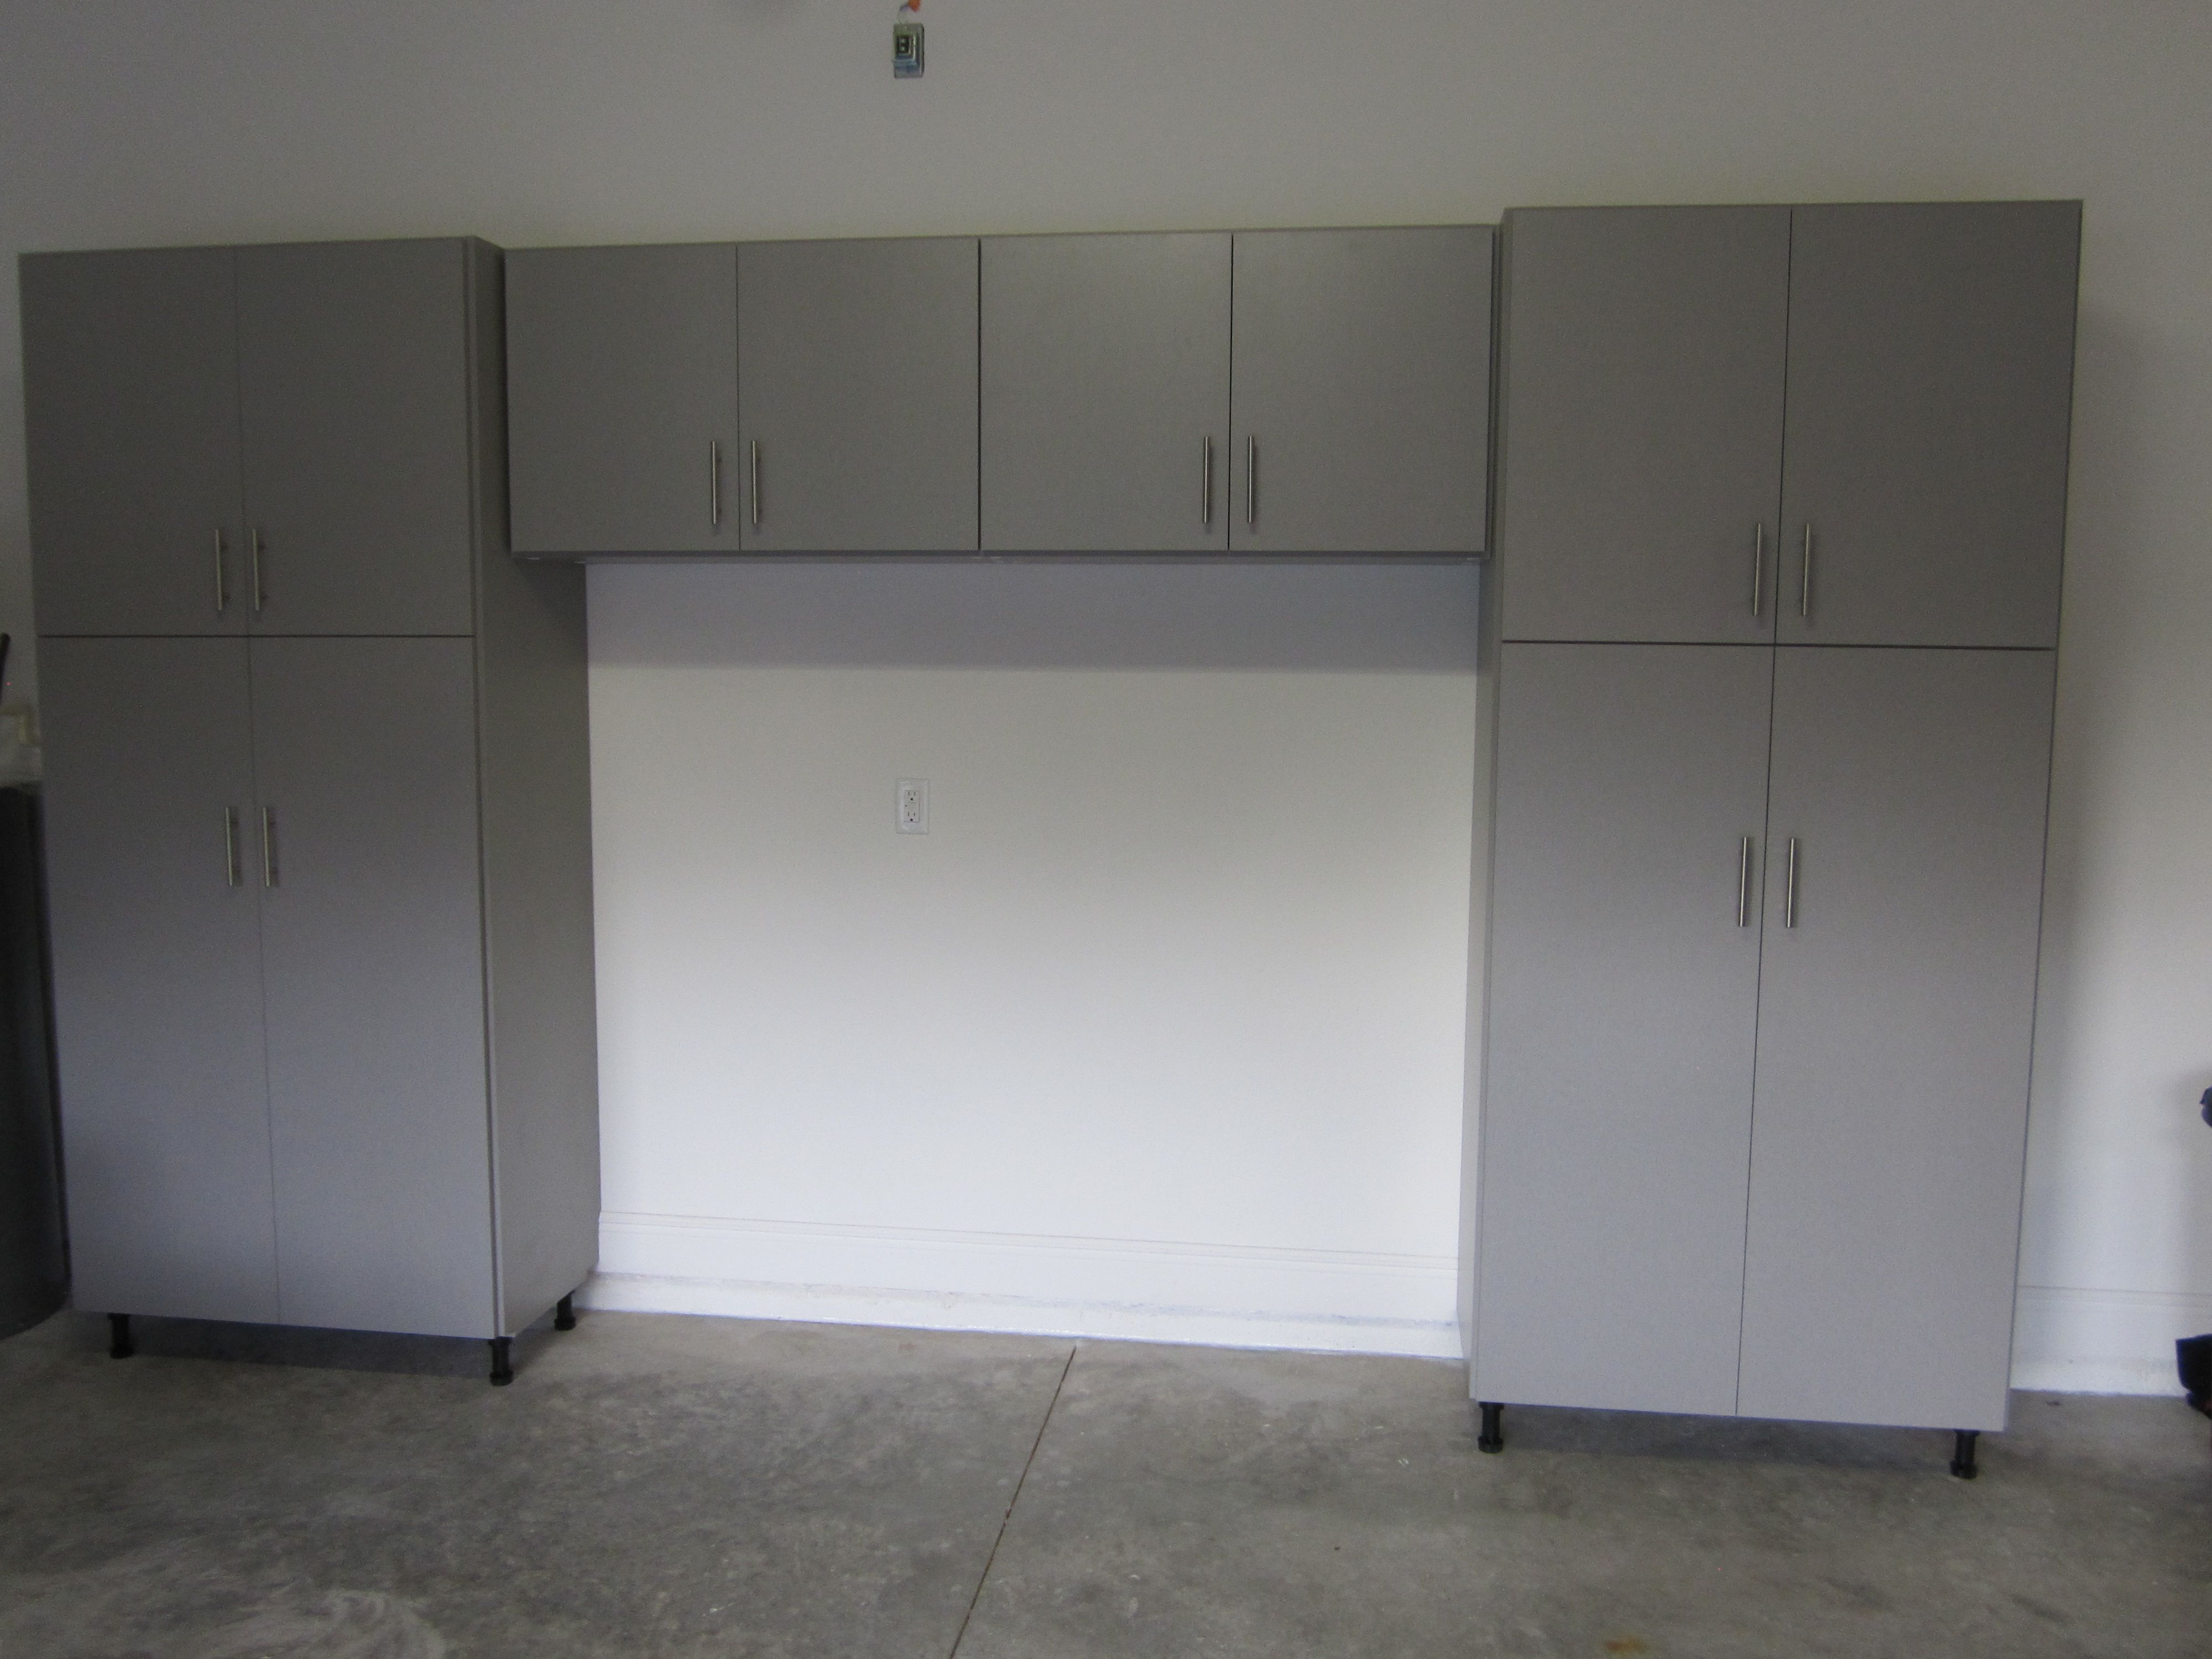 Superb Garage Storage Solution Organize Custom Cabinets More Space Place Murphy  Bed Sarasota